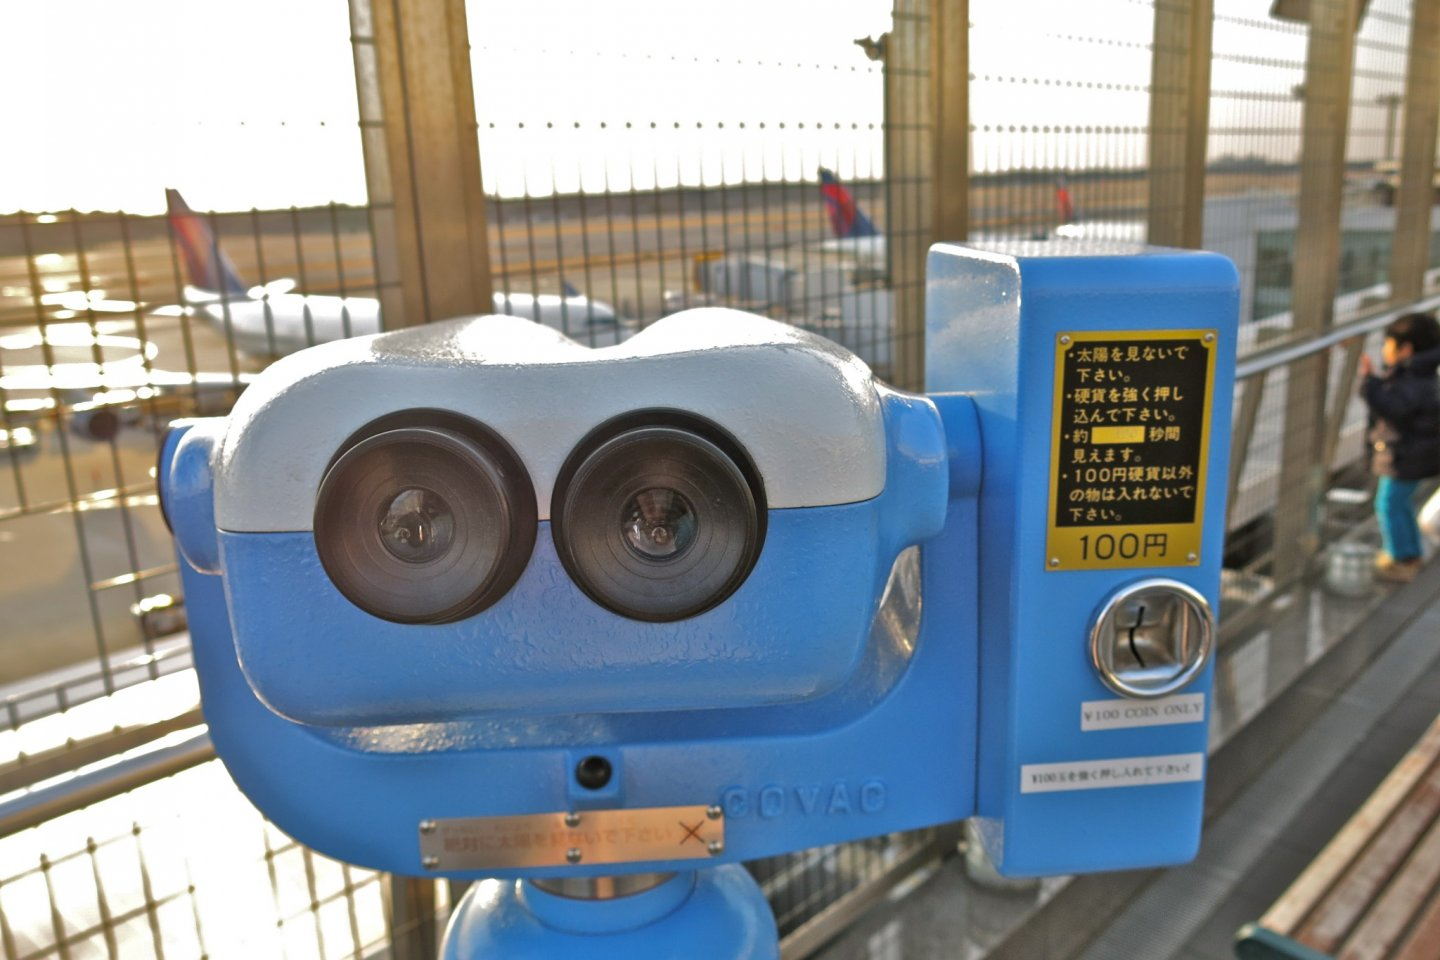 Roam around the Observation Deck and pay 100yen to peek through telescopes to get a closer look at aircraft taking off!